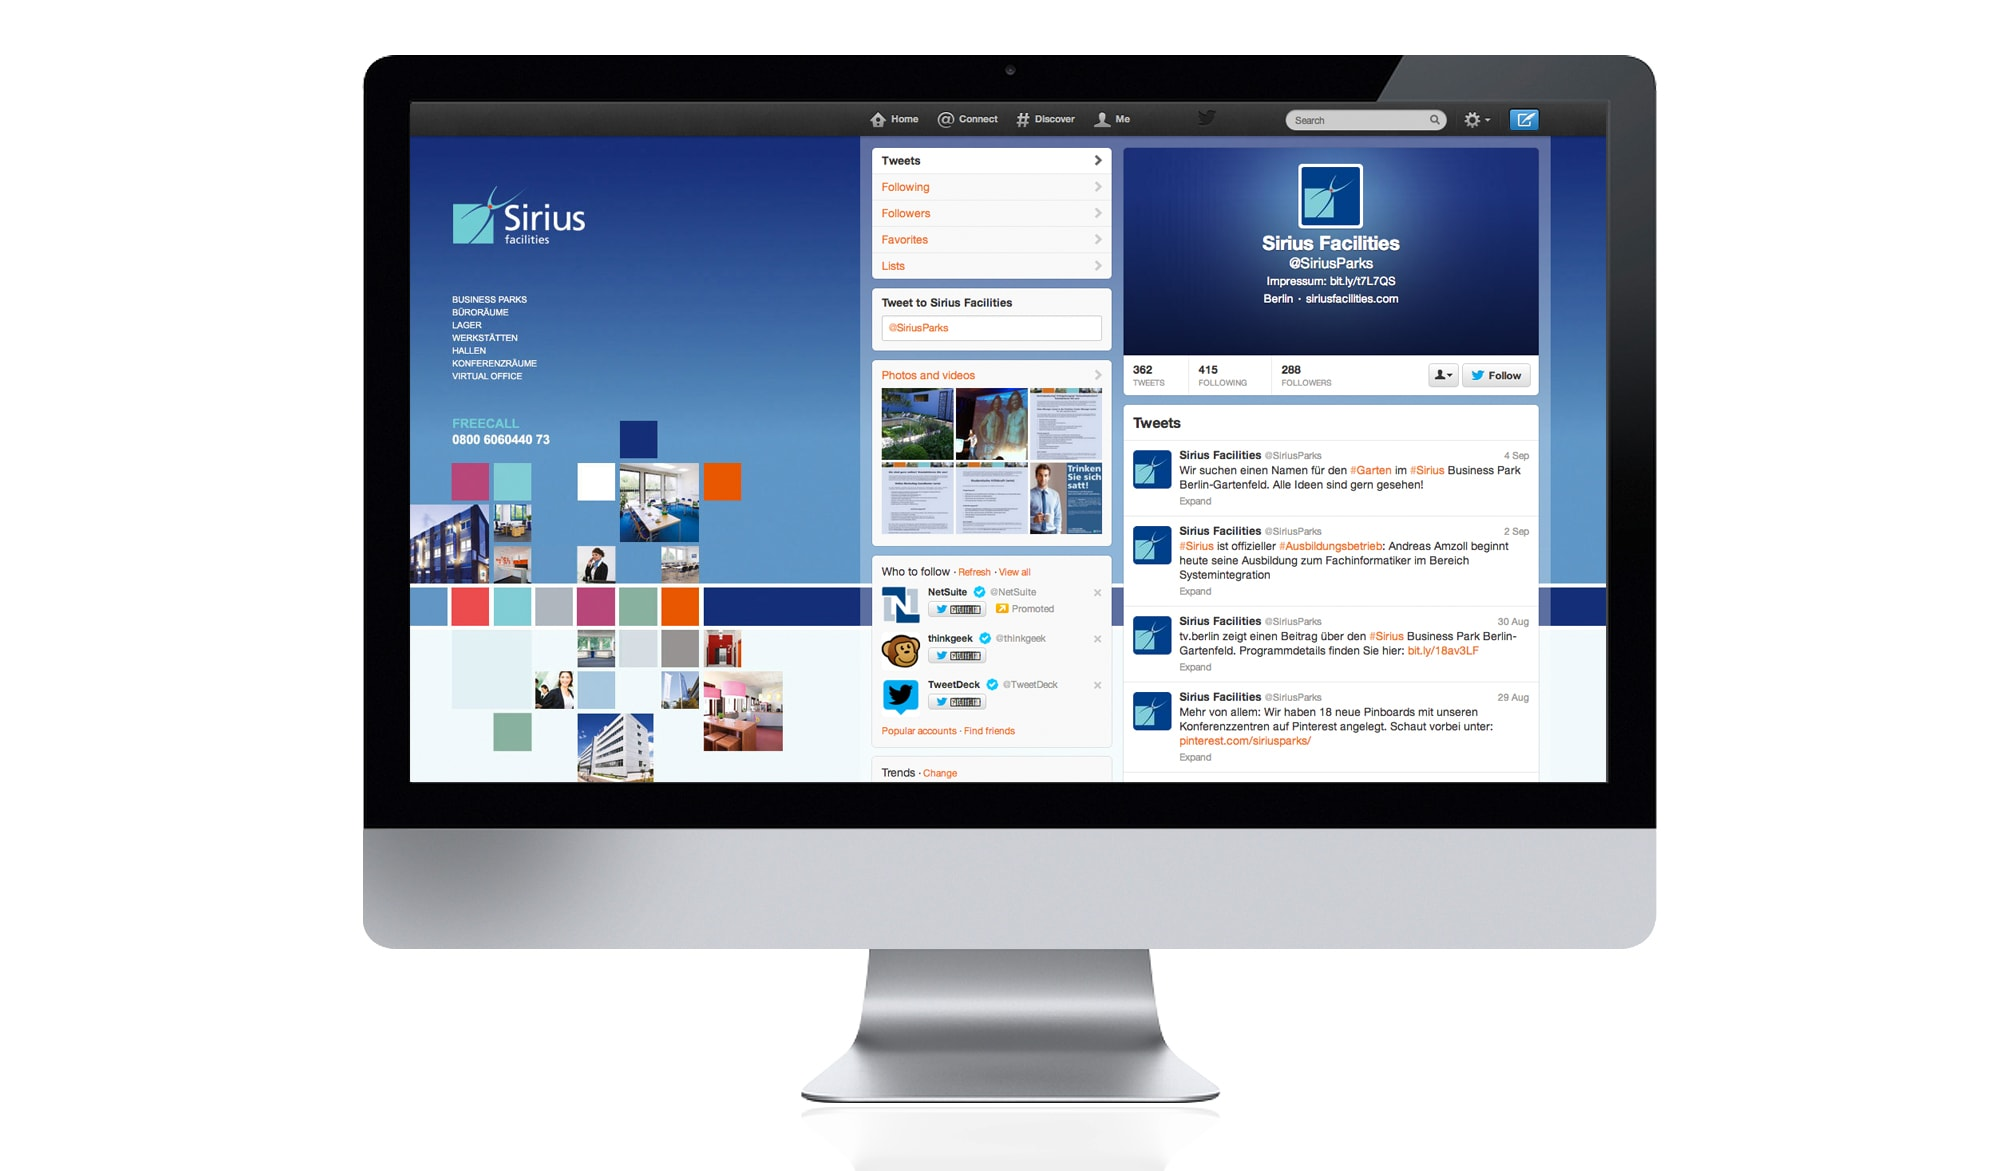 Sirius Facilities website - twitter page